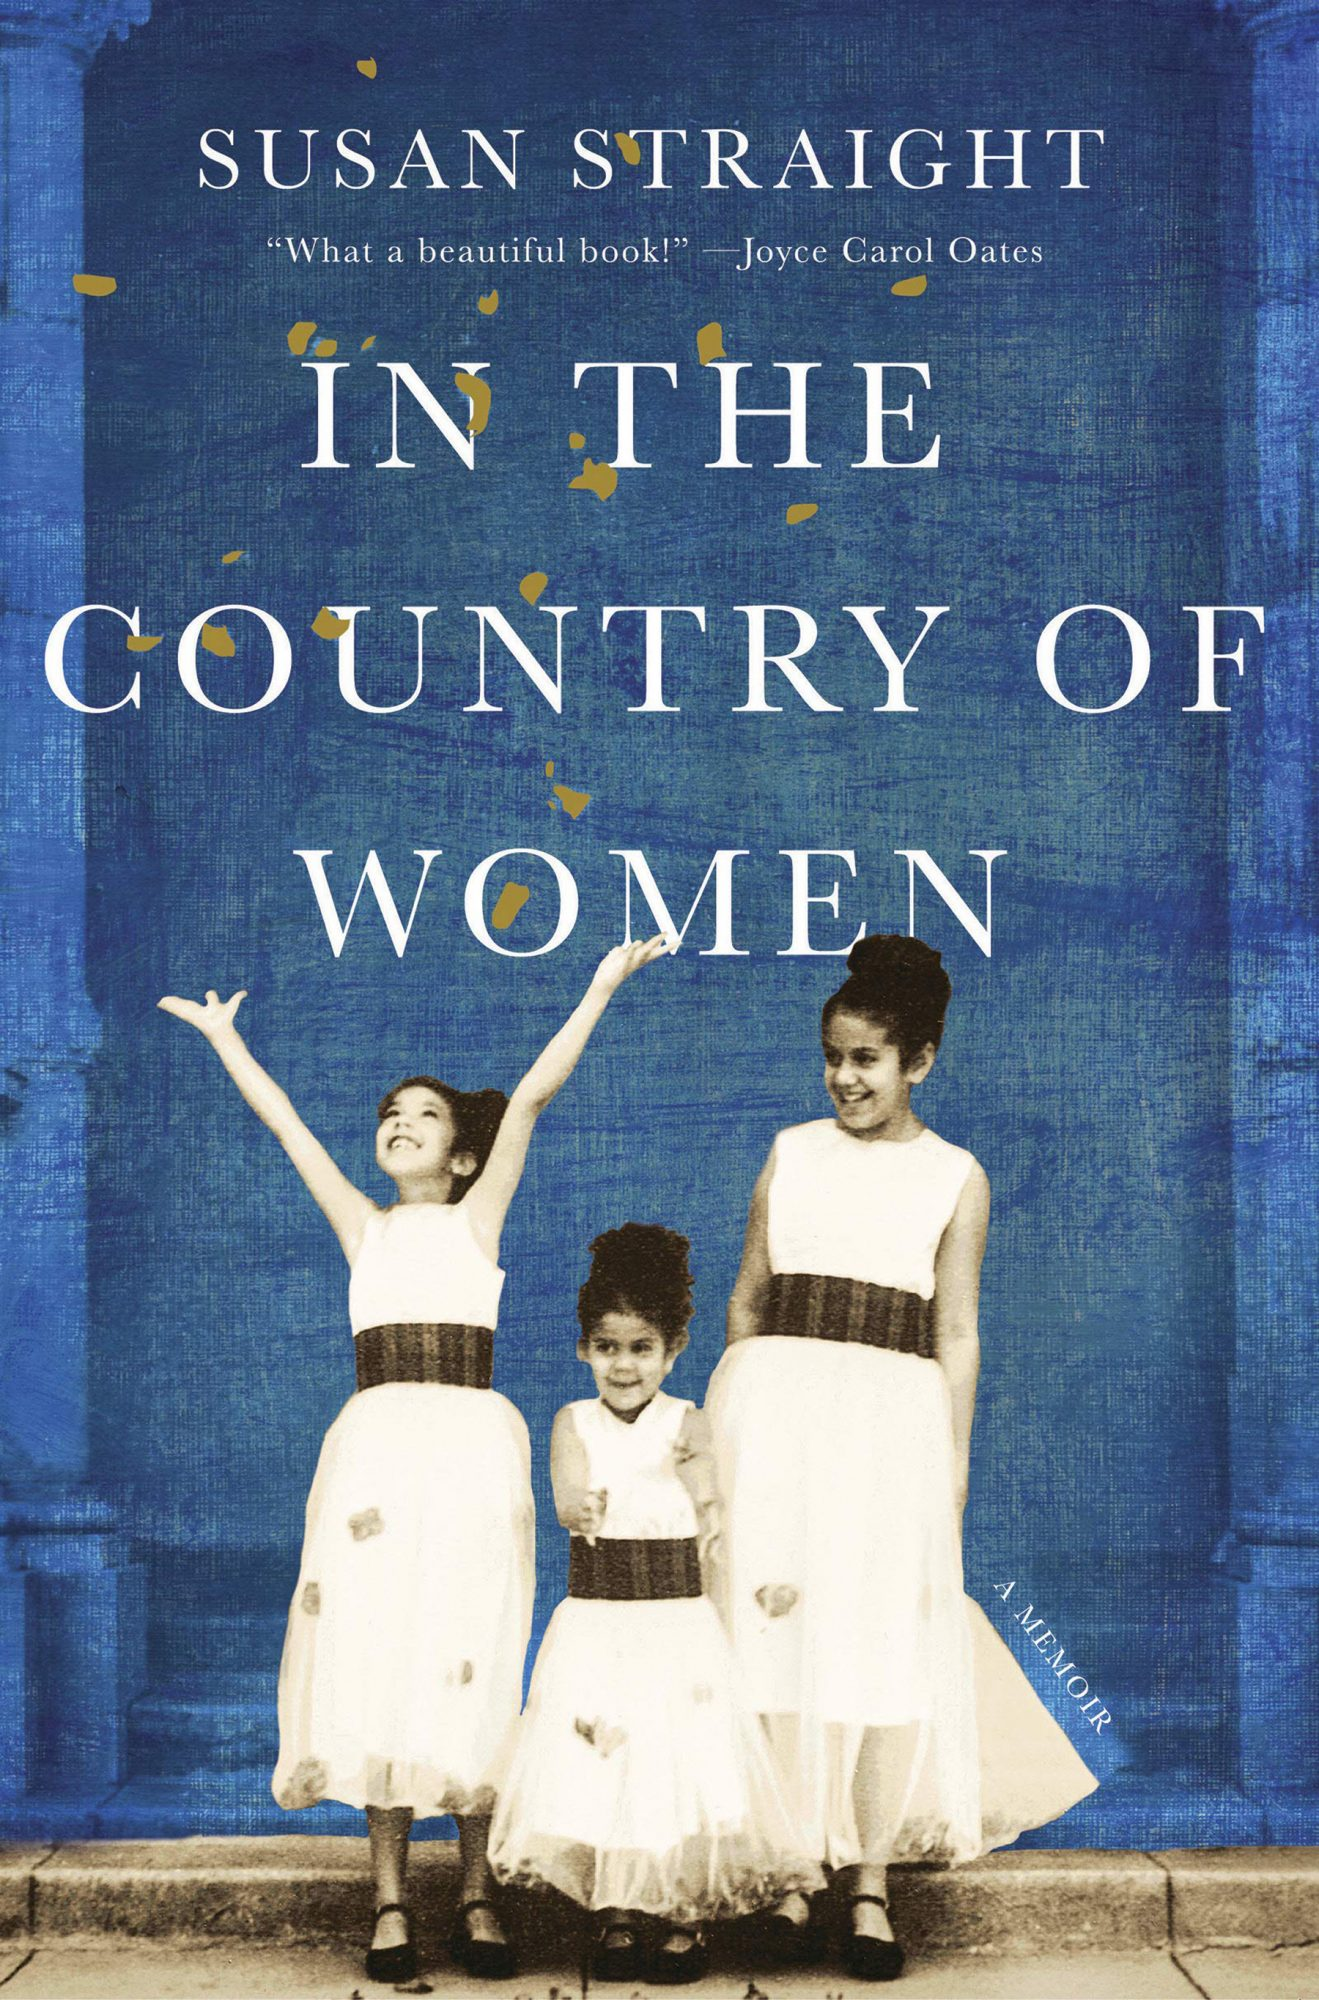 In the Country of Women, by Susan Straight